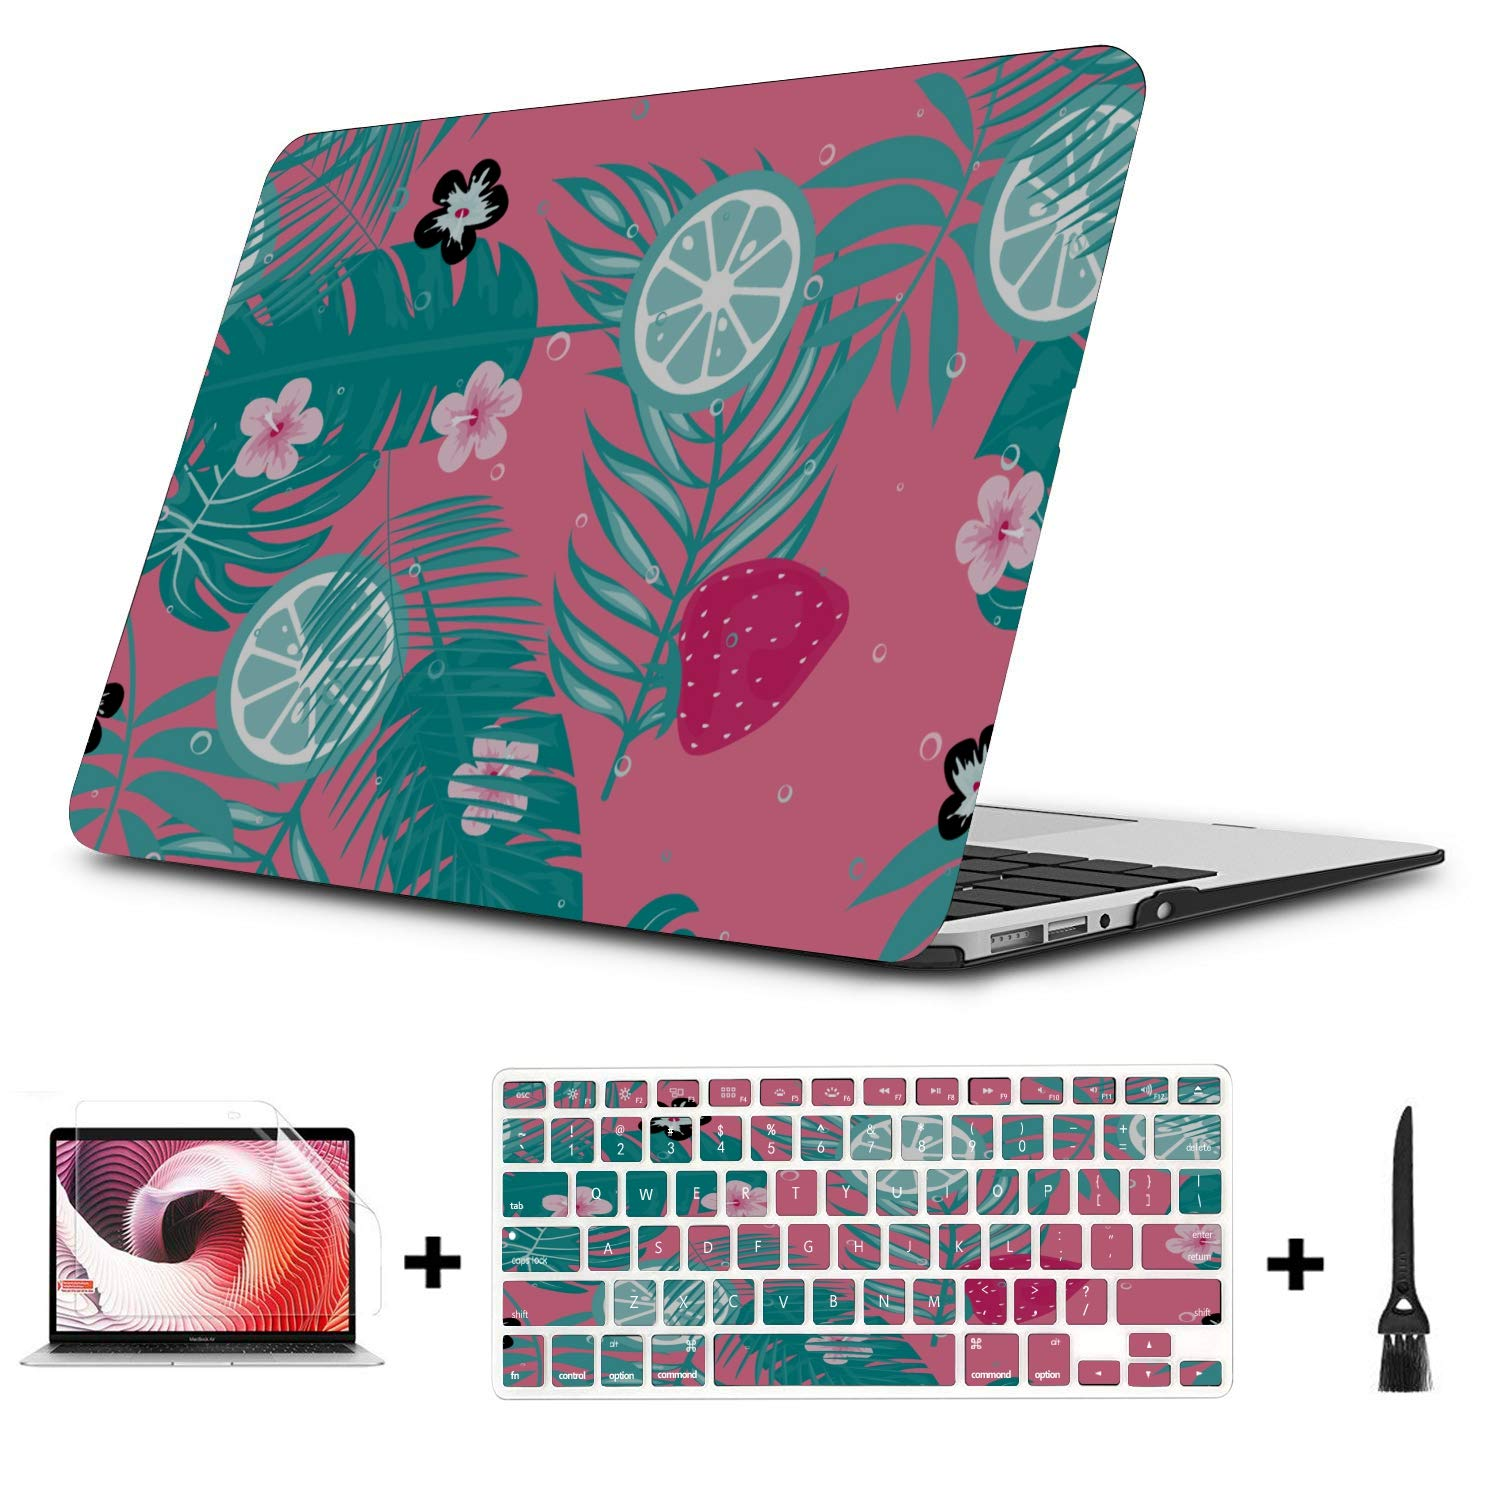 MacBook Pro Cases Summer Sweet Cute Fruit Pineapple Plastic Hard Shell Compatible Mac Air 11 Pro 13 15 Laptop Case Protection for MacBook 2016-2019 Version